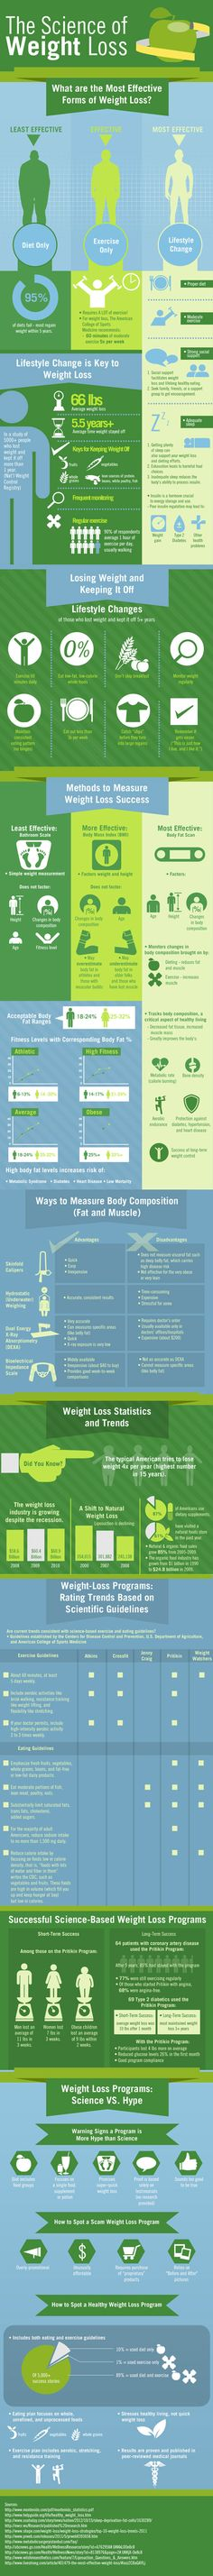 The Science of #WeightLoss Infographic